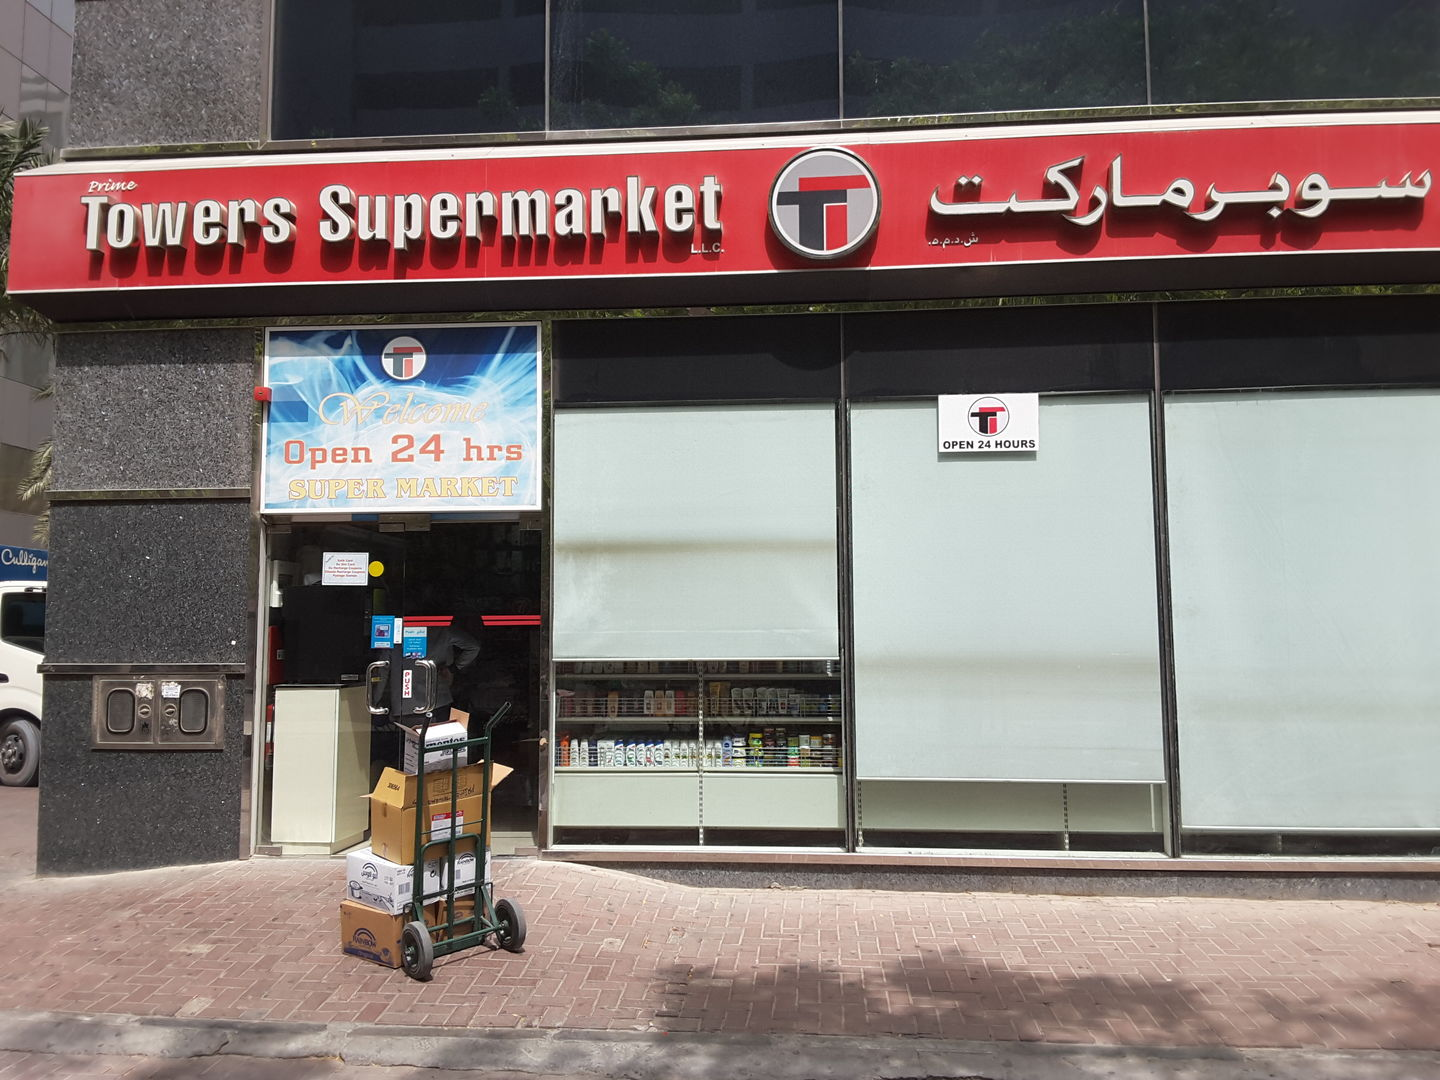 HiDubai-business-prime-towers-supermarket-food-beverage-supermarkets-hypermarkets-grocery-stores-sheikh-zayed-road-2-trade-centre-2-dubai-2